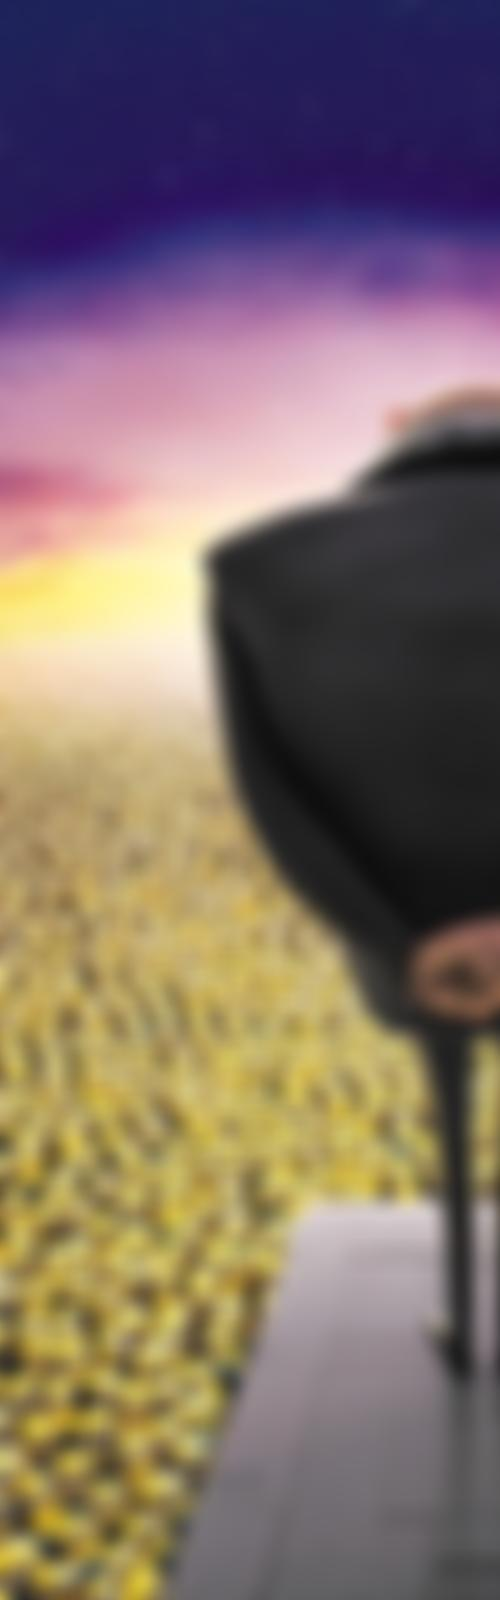 Image for Despicable Me 2